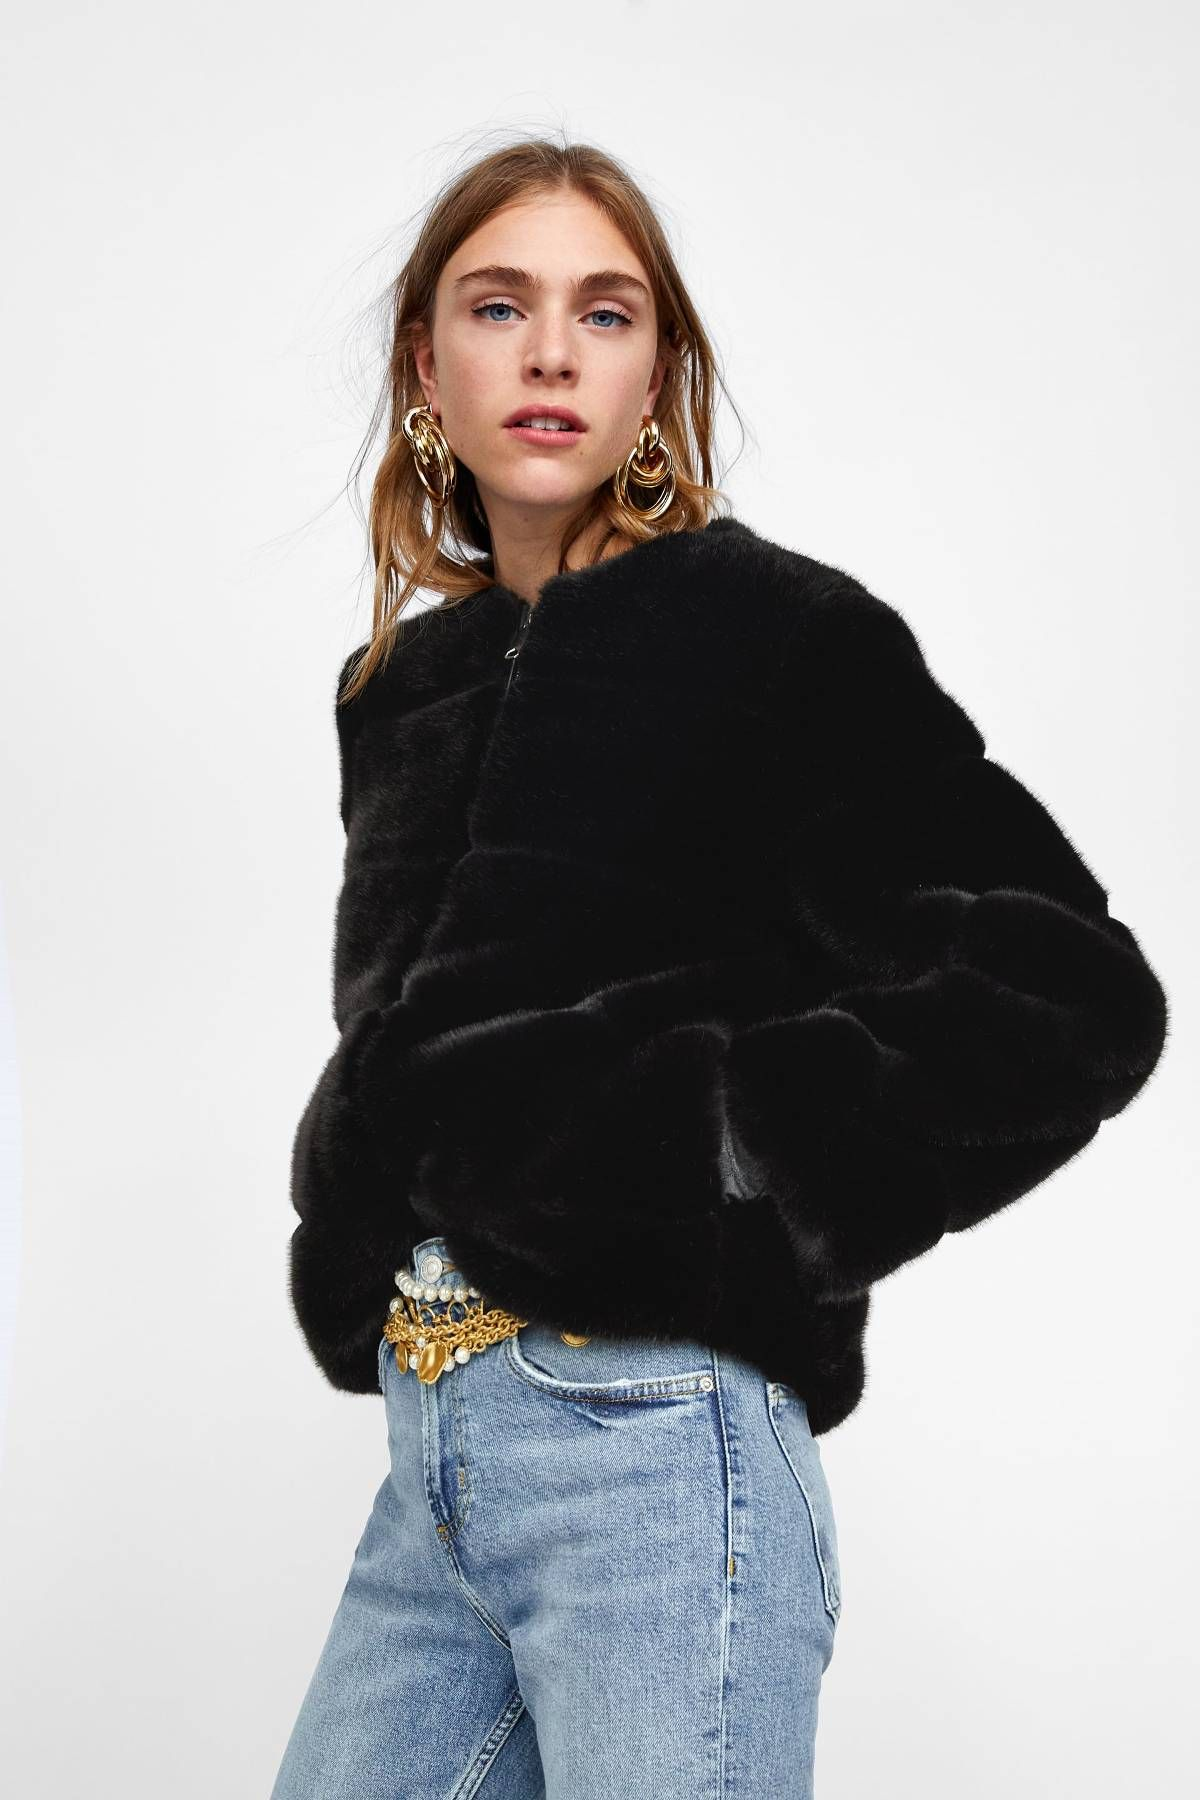 Under 100 Items All The Cool Fashion Girls Are Buying Short Faux Fur Jacket Faux Fur Jacket Coat Black Faux Fur Jacket